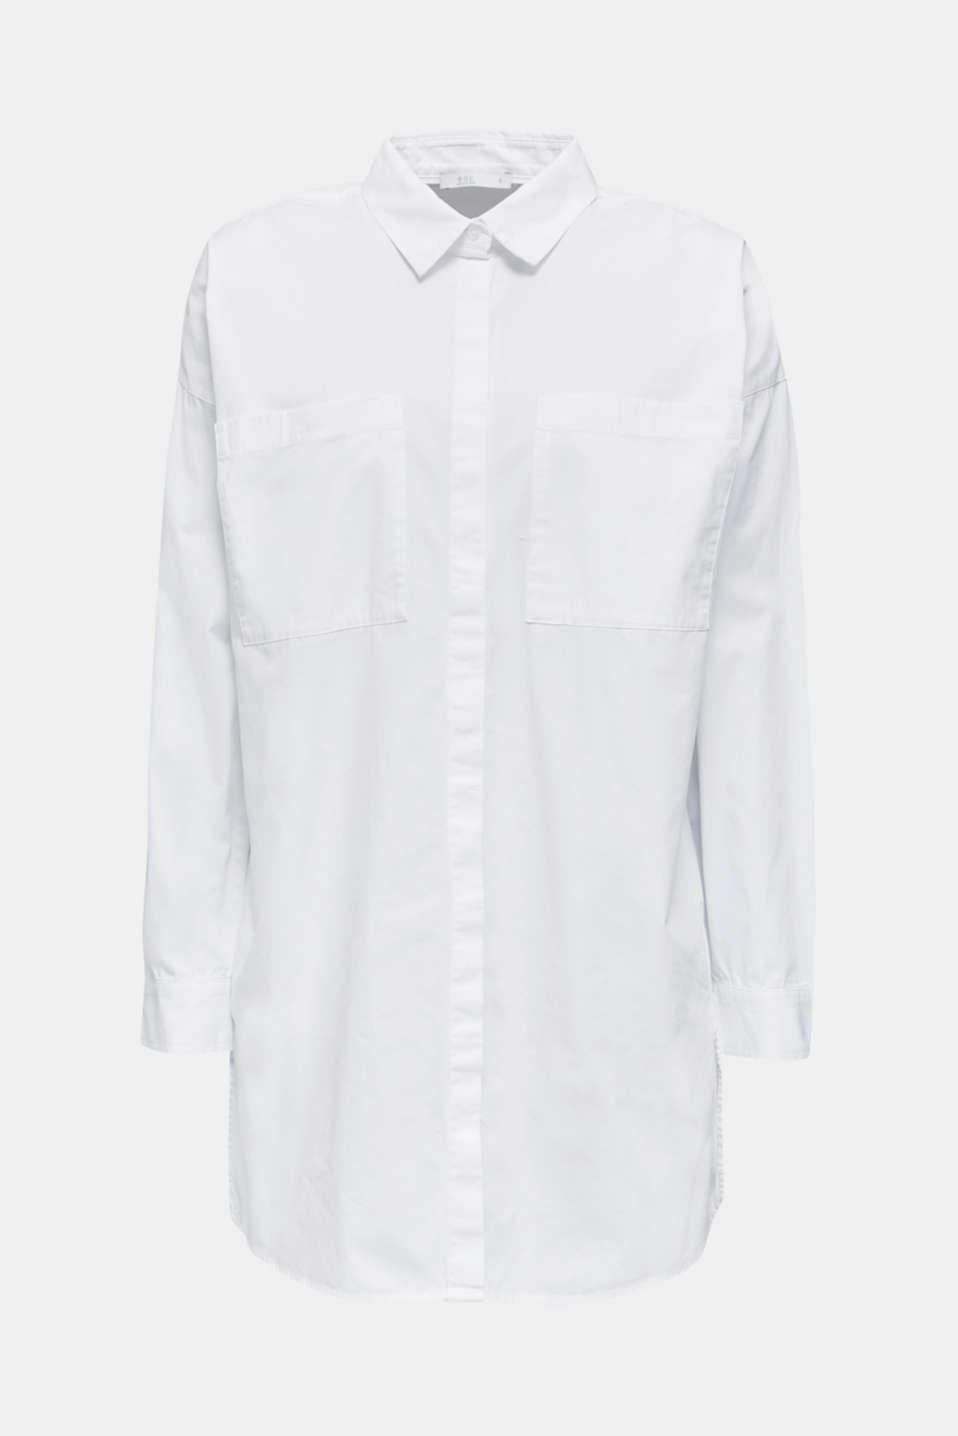 Long blouse with slit pockets, 100% cotton, WHITE, detail image number 6